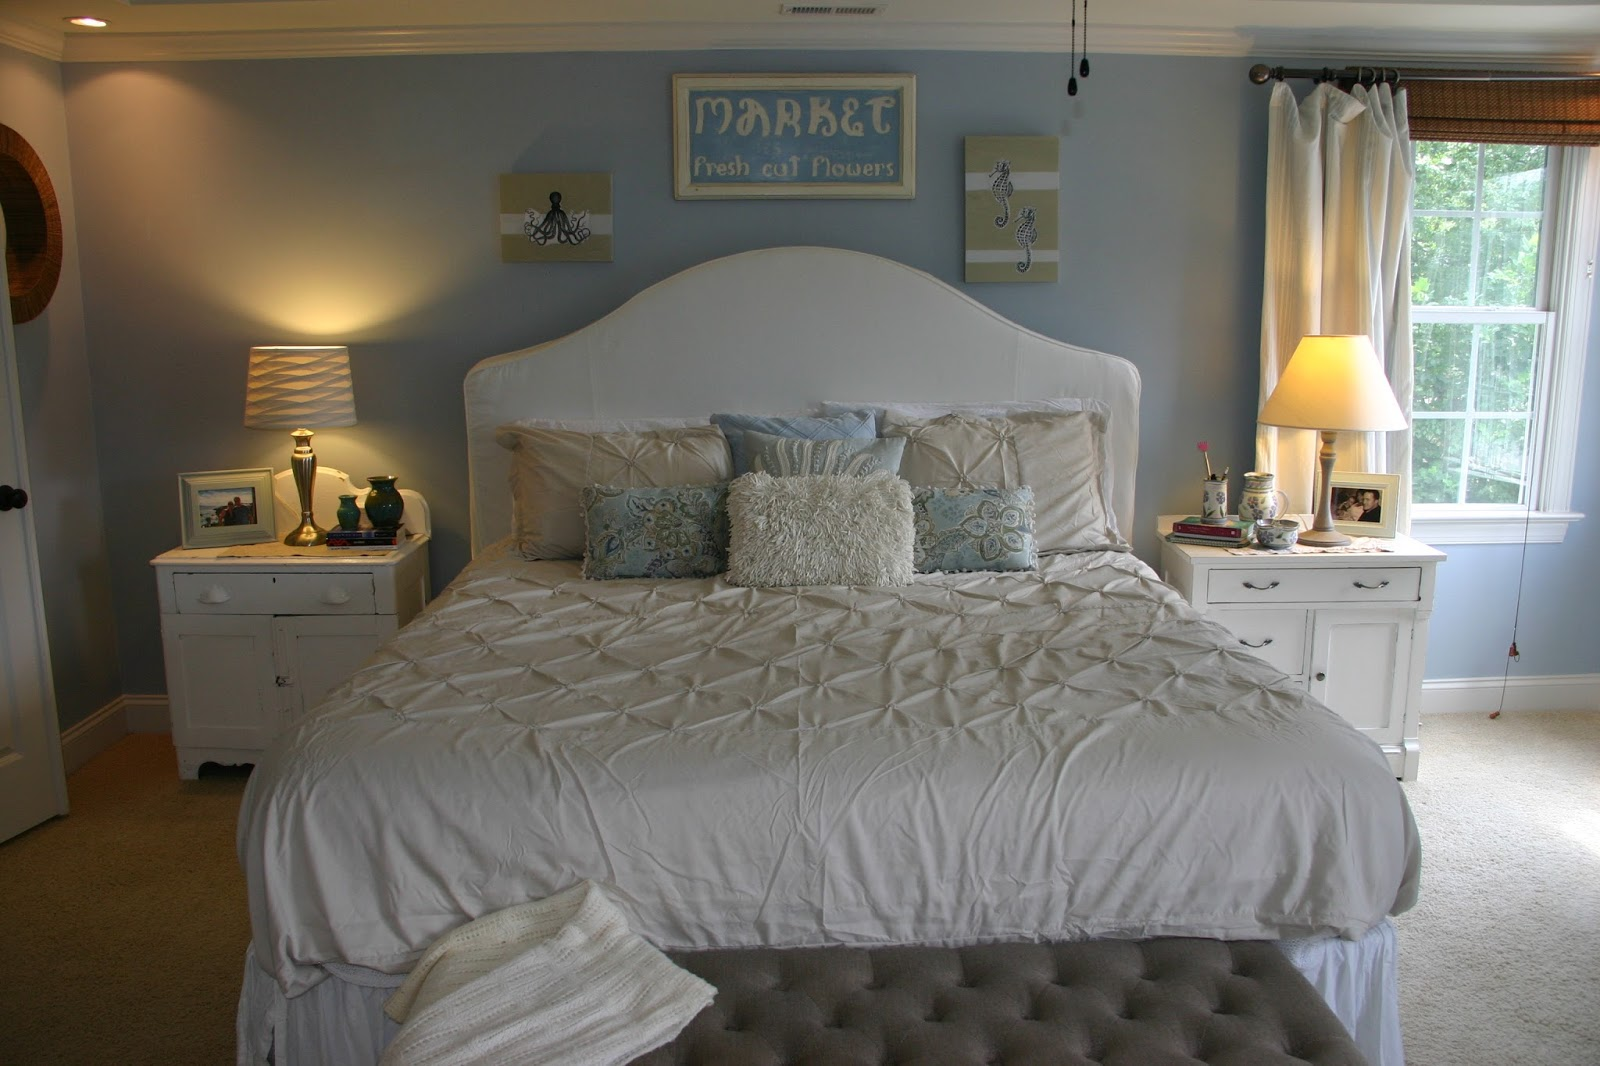 Cottage Blue Designs: Master Bedroom Reveal